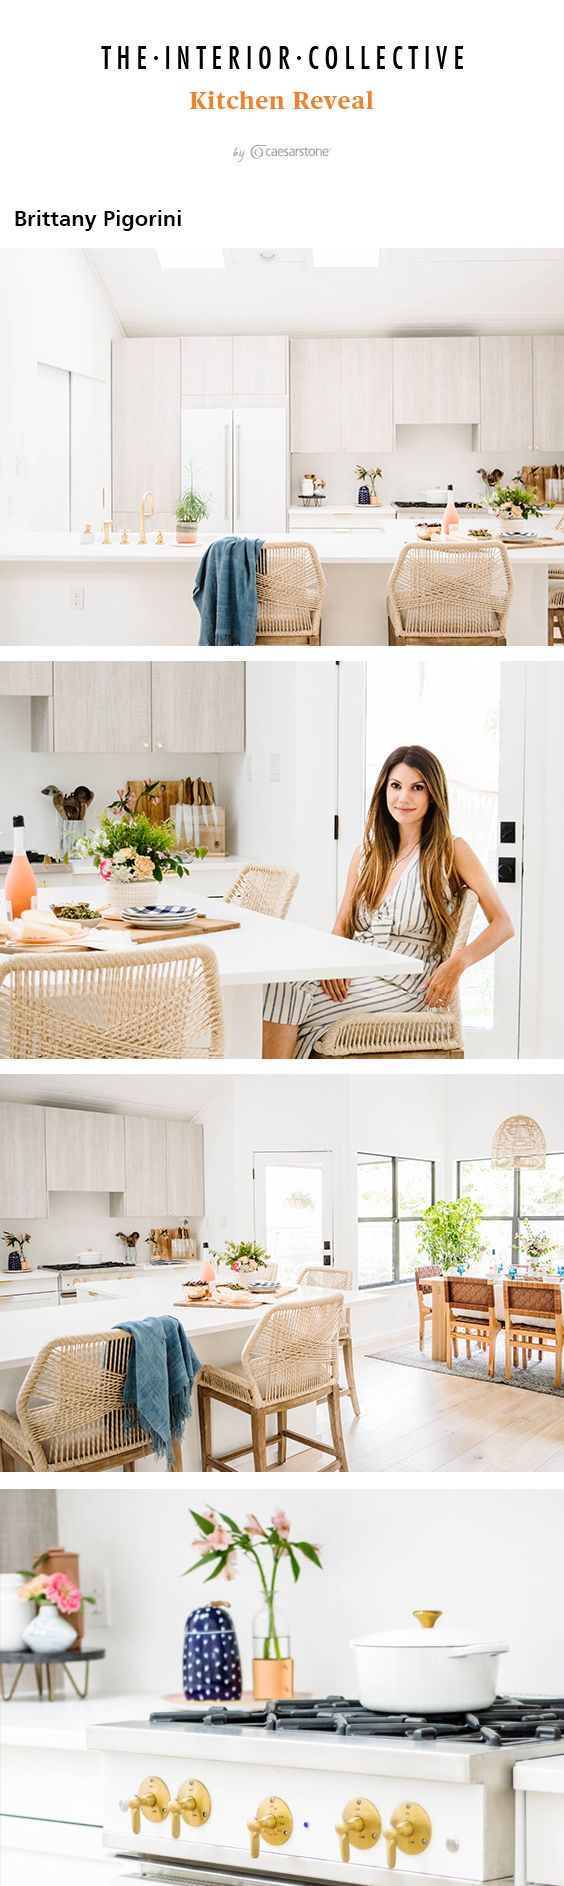 Need help designing a bright white kitchen with lots of natural light? Tour Brittany Pigorini's kitchen remodel. A wall of windows brightens the kitchen with a Scandinavian modern look, light grey cabinets and Caesarstone Pure WHite countertops.